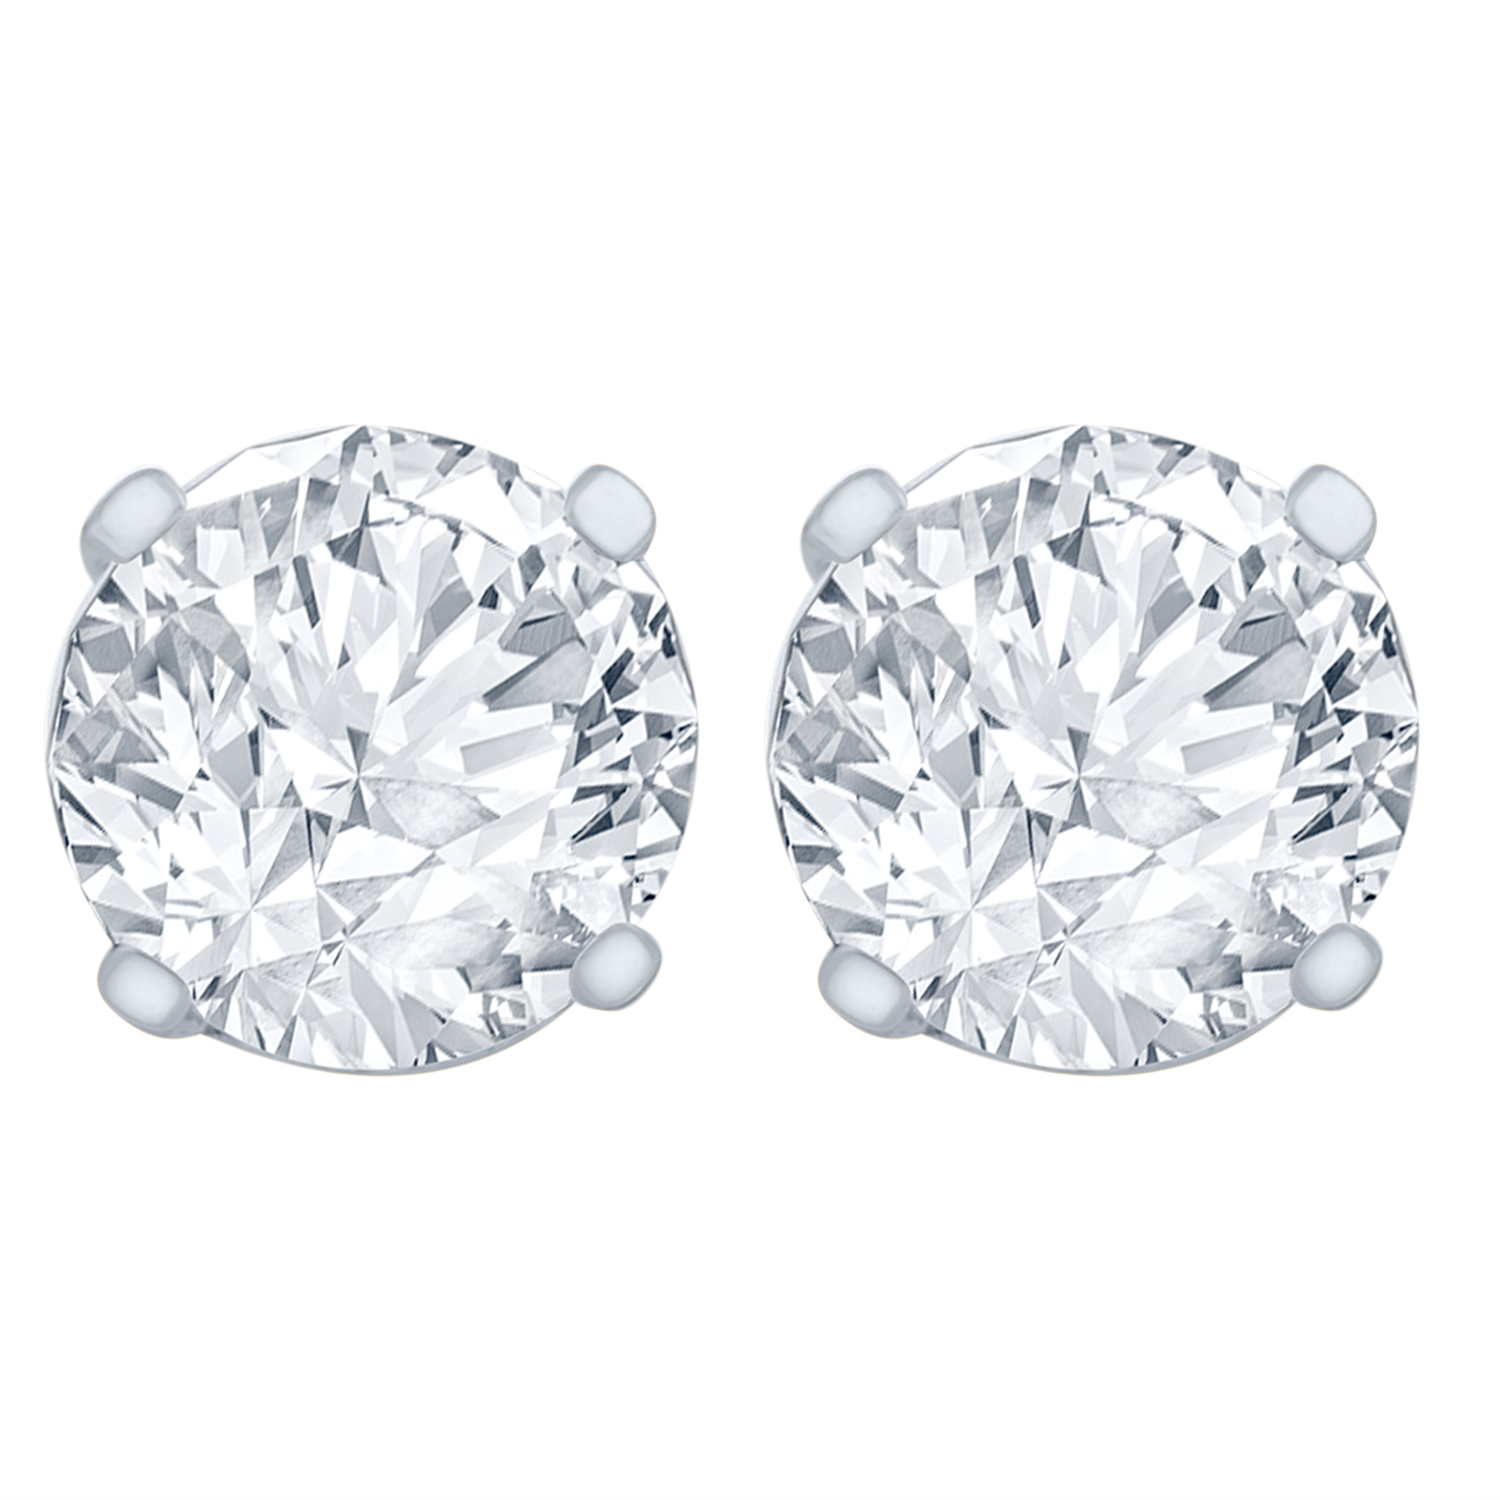 1/4 Carat Diamond Stud Earrings (I2I3 Clarity, JK Color) 14kt White Gold